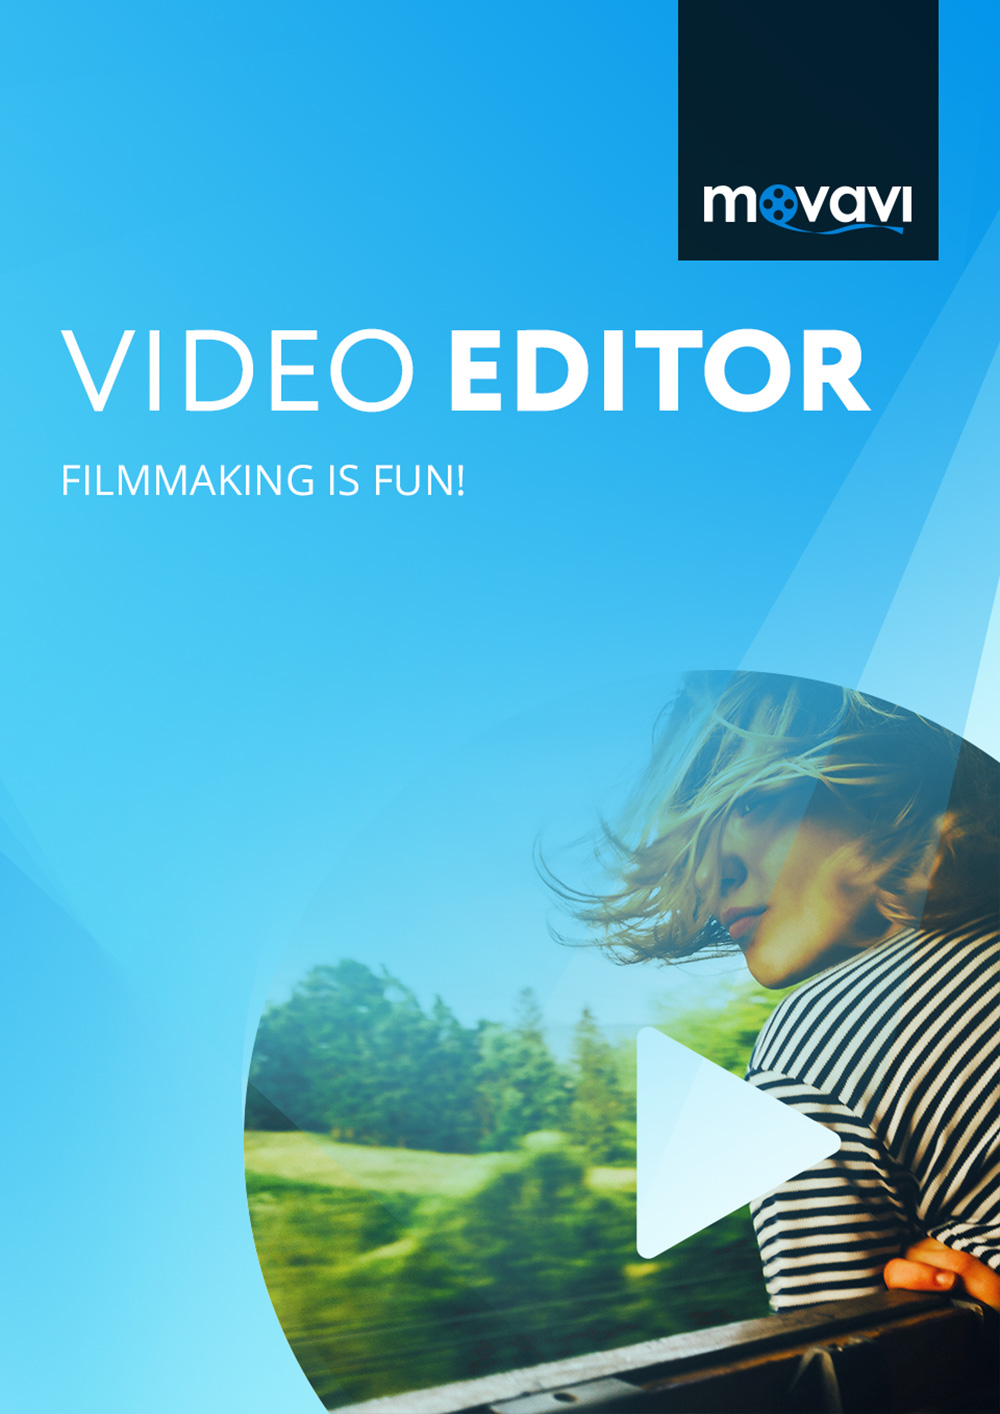 Movavi Video Editor 14 Personal Edition [Download] by Movavi